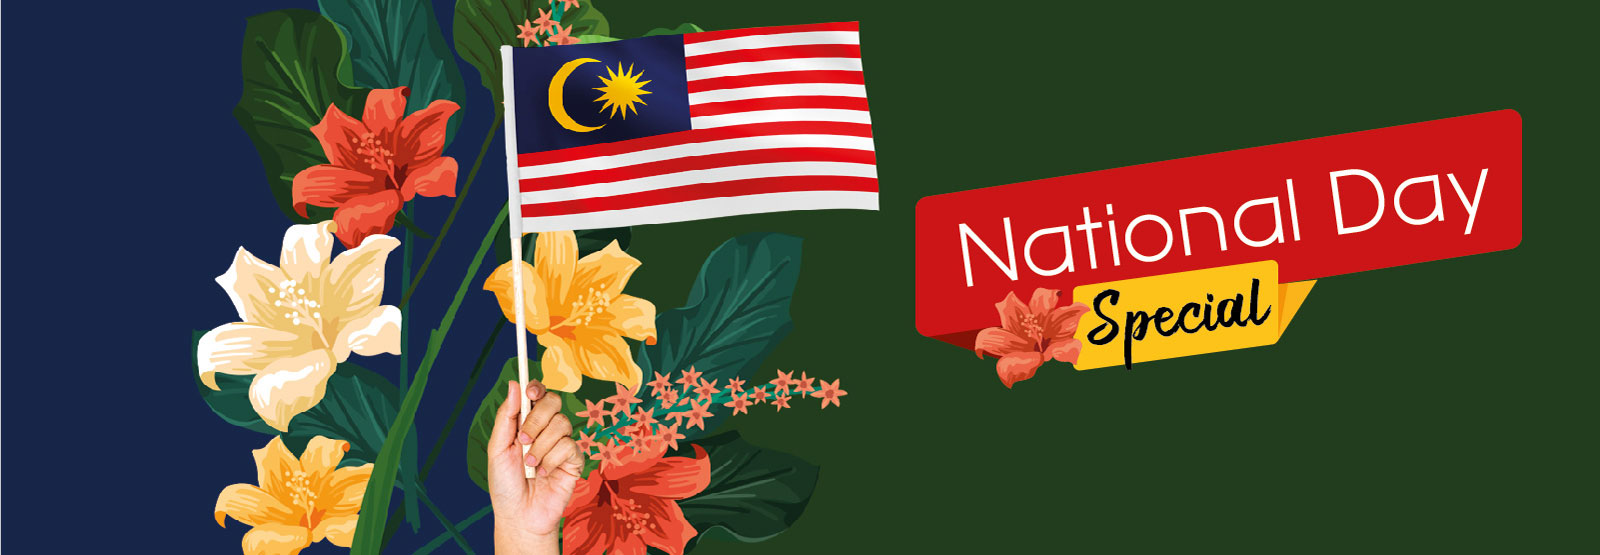 National Day Special